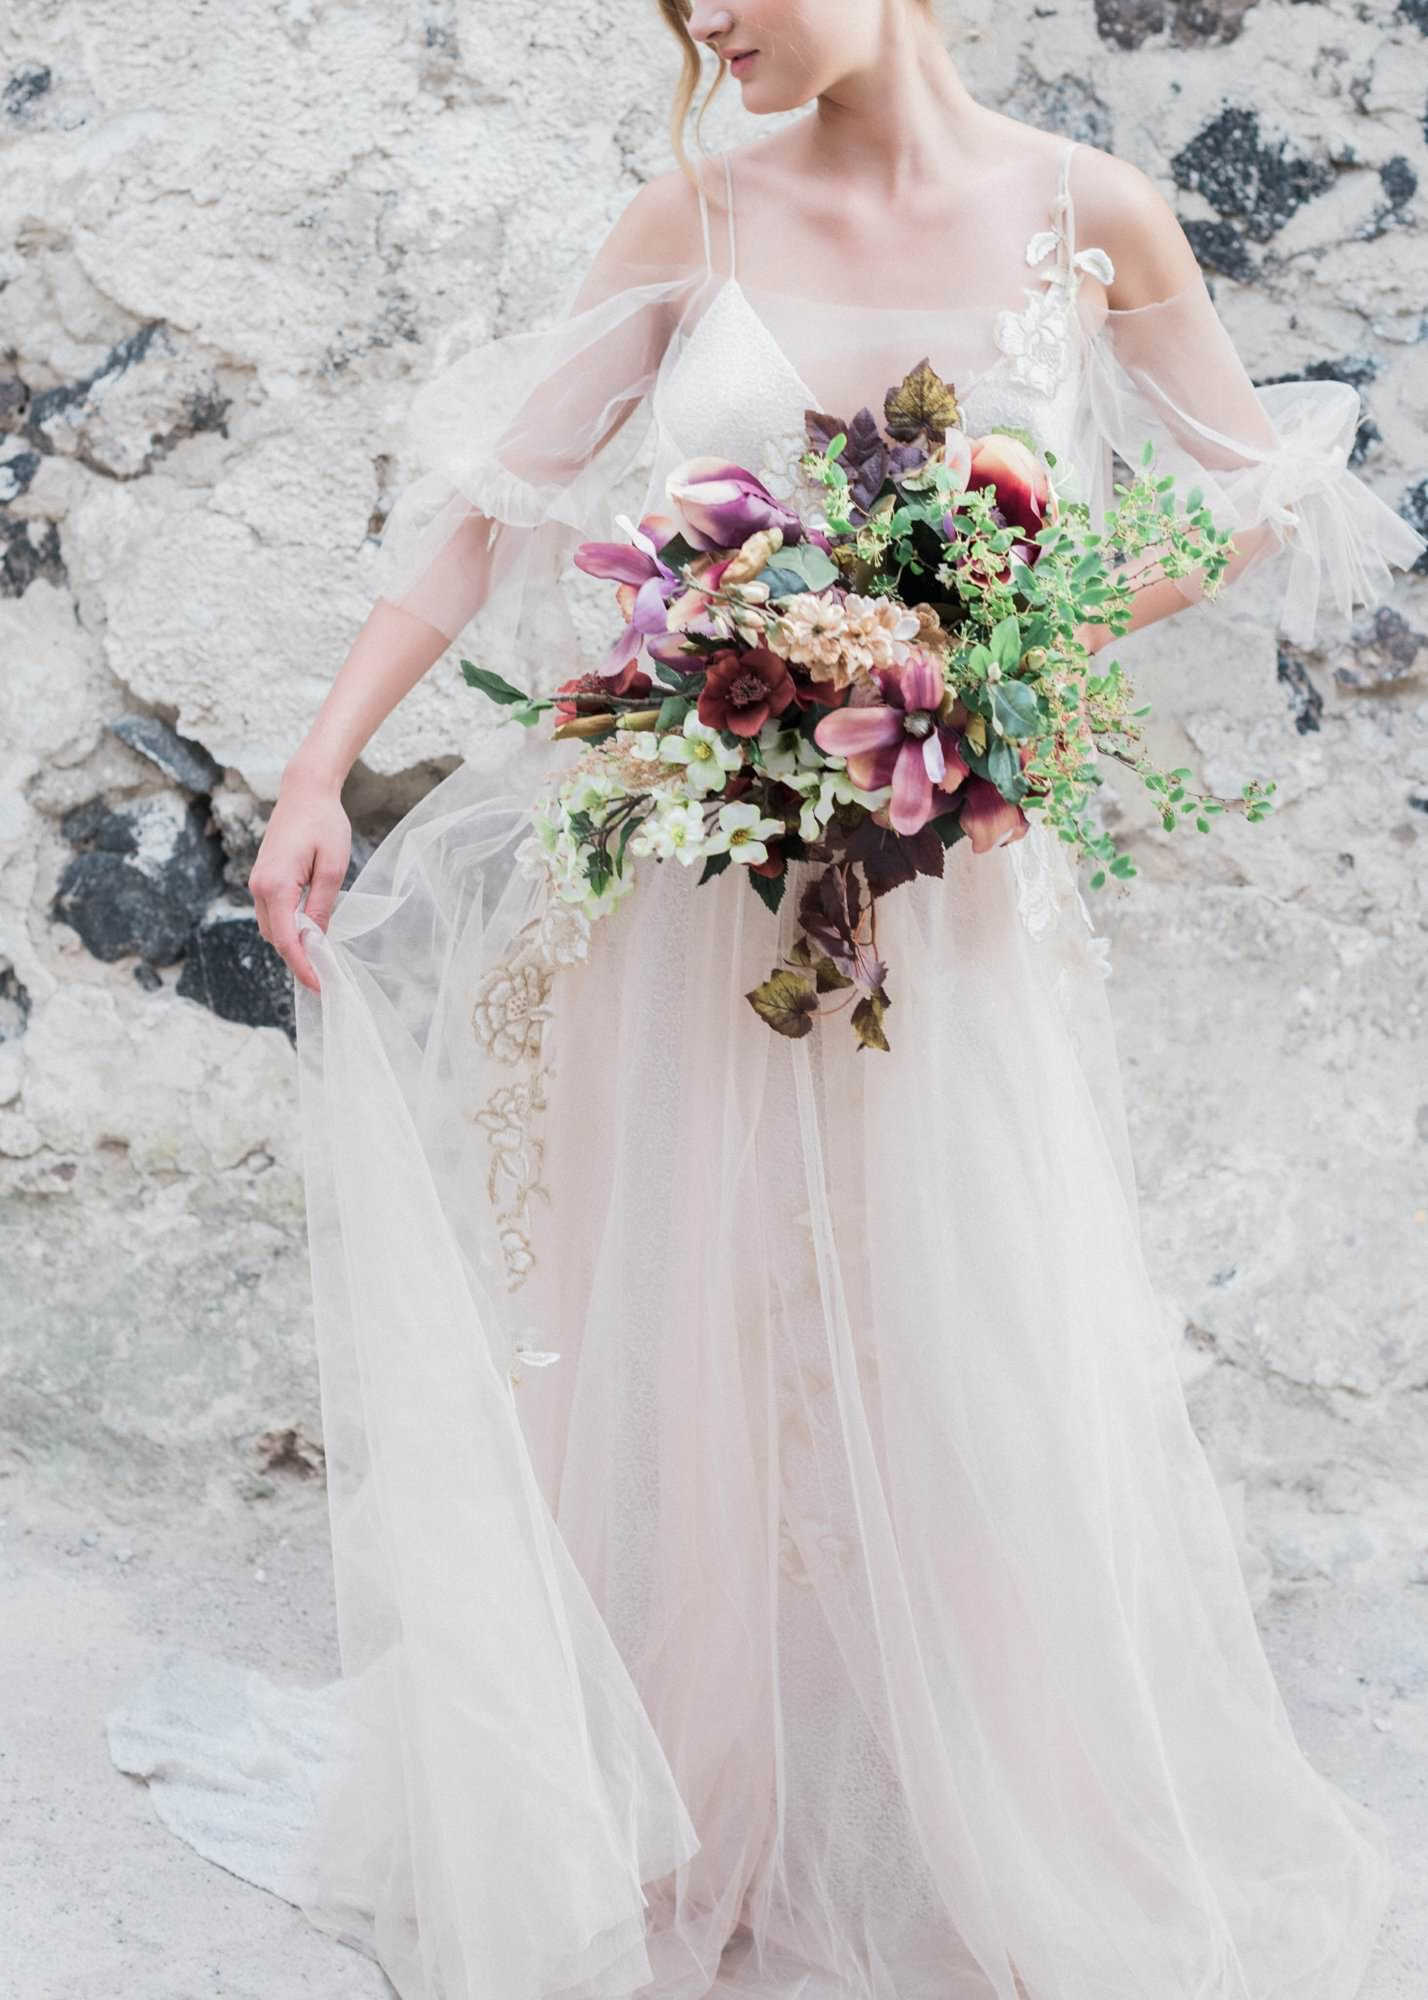 43-bridal-santorini-wedding-photographer-greece-b-v